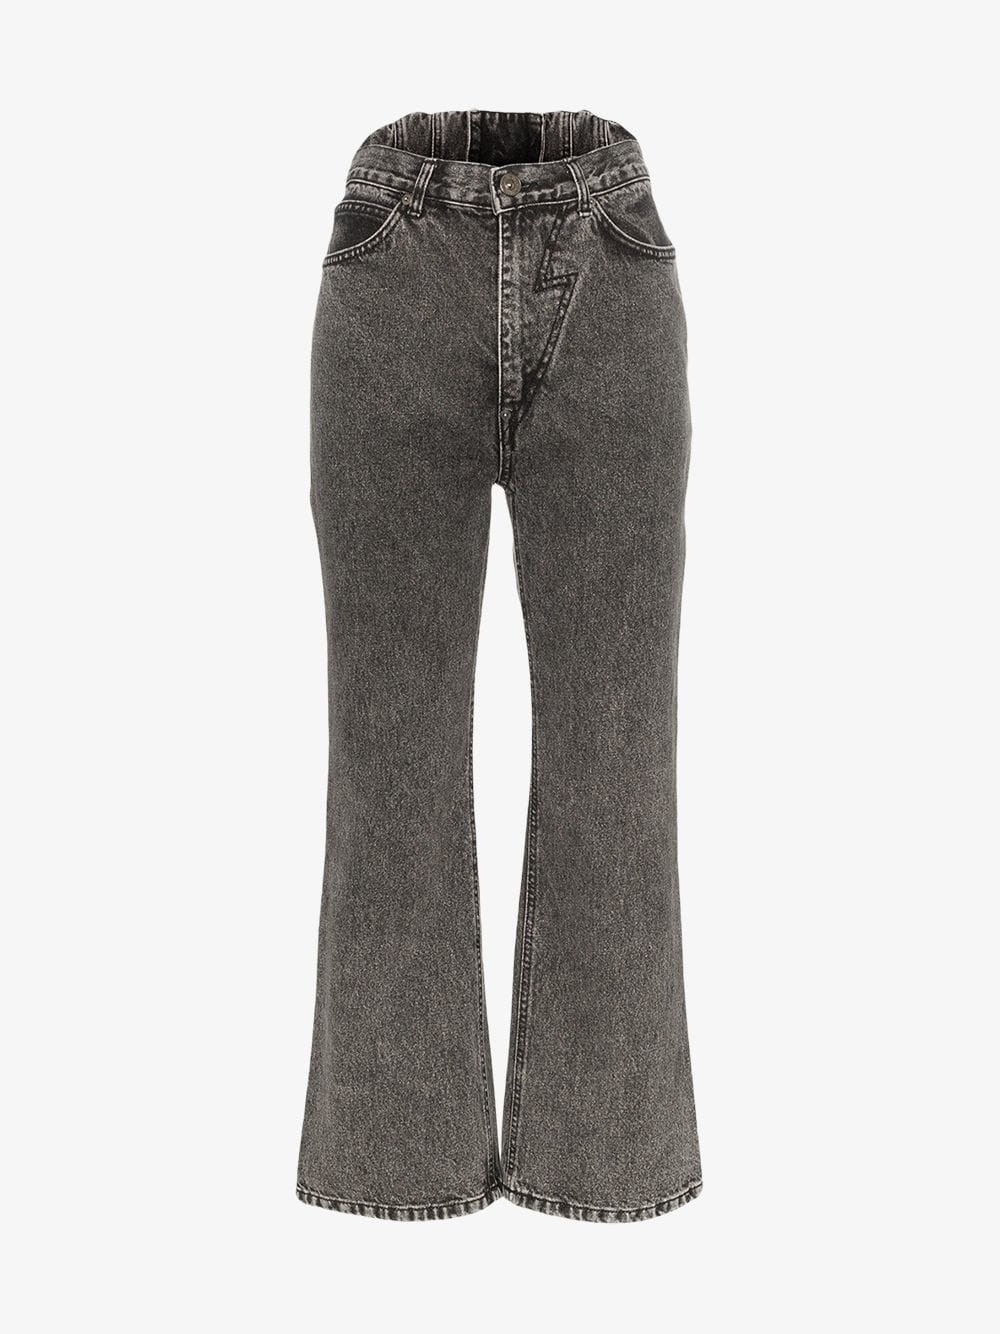 pushBUTTON Flared high-waisted jeans in black